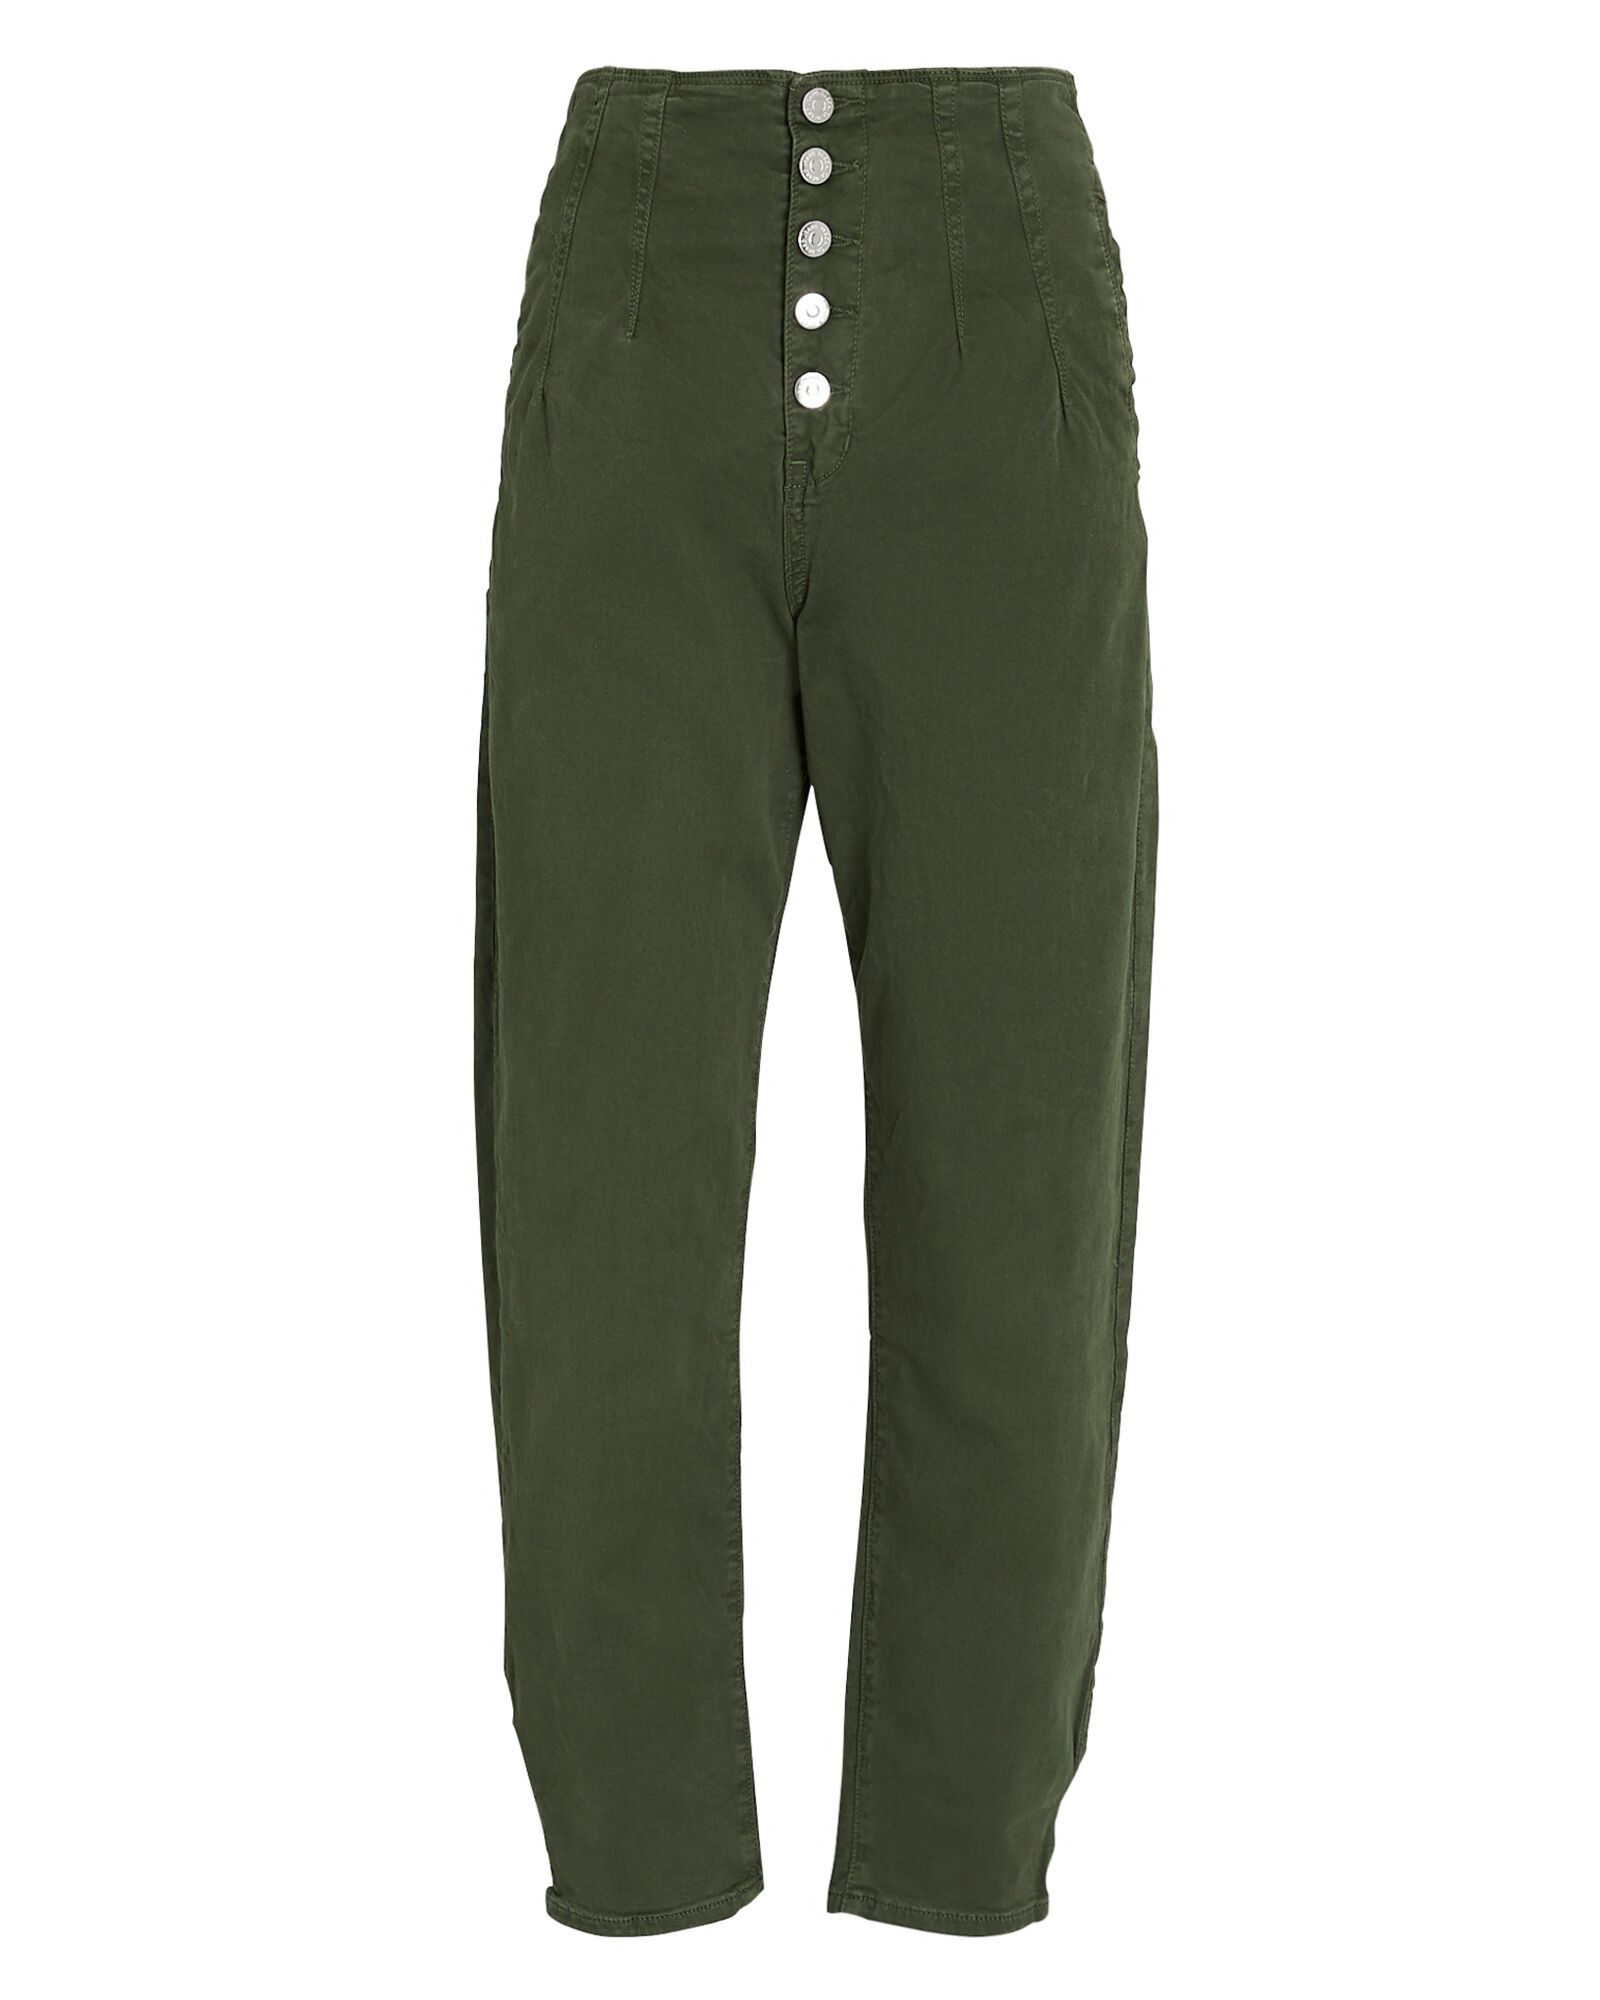 Nita Pegged Cotton Twill Pants, OLIVE/ARMY, hi-res